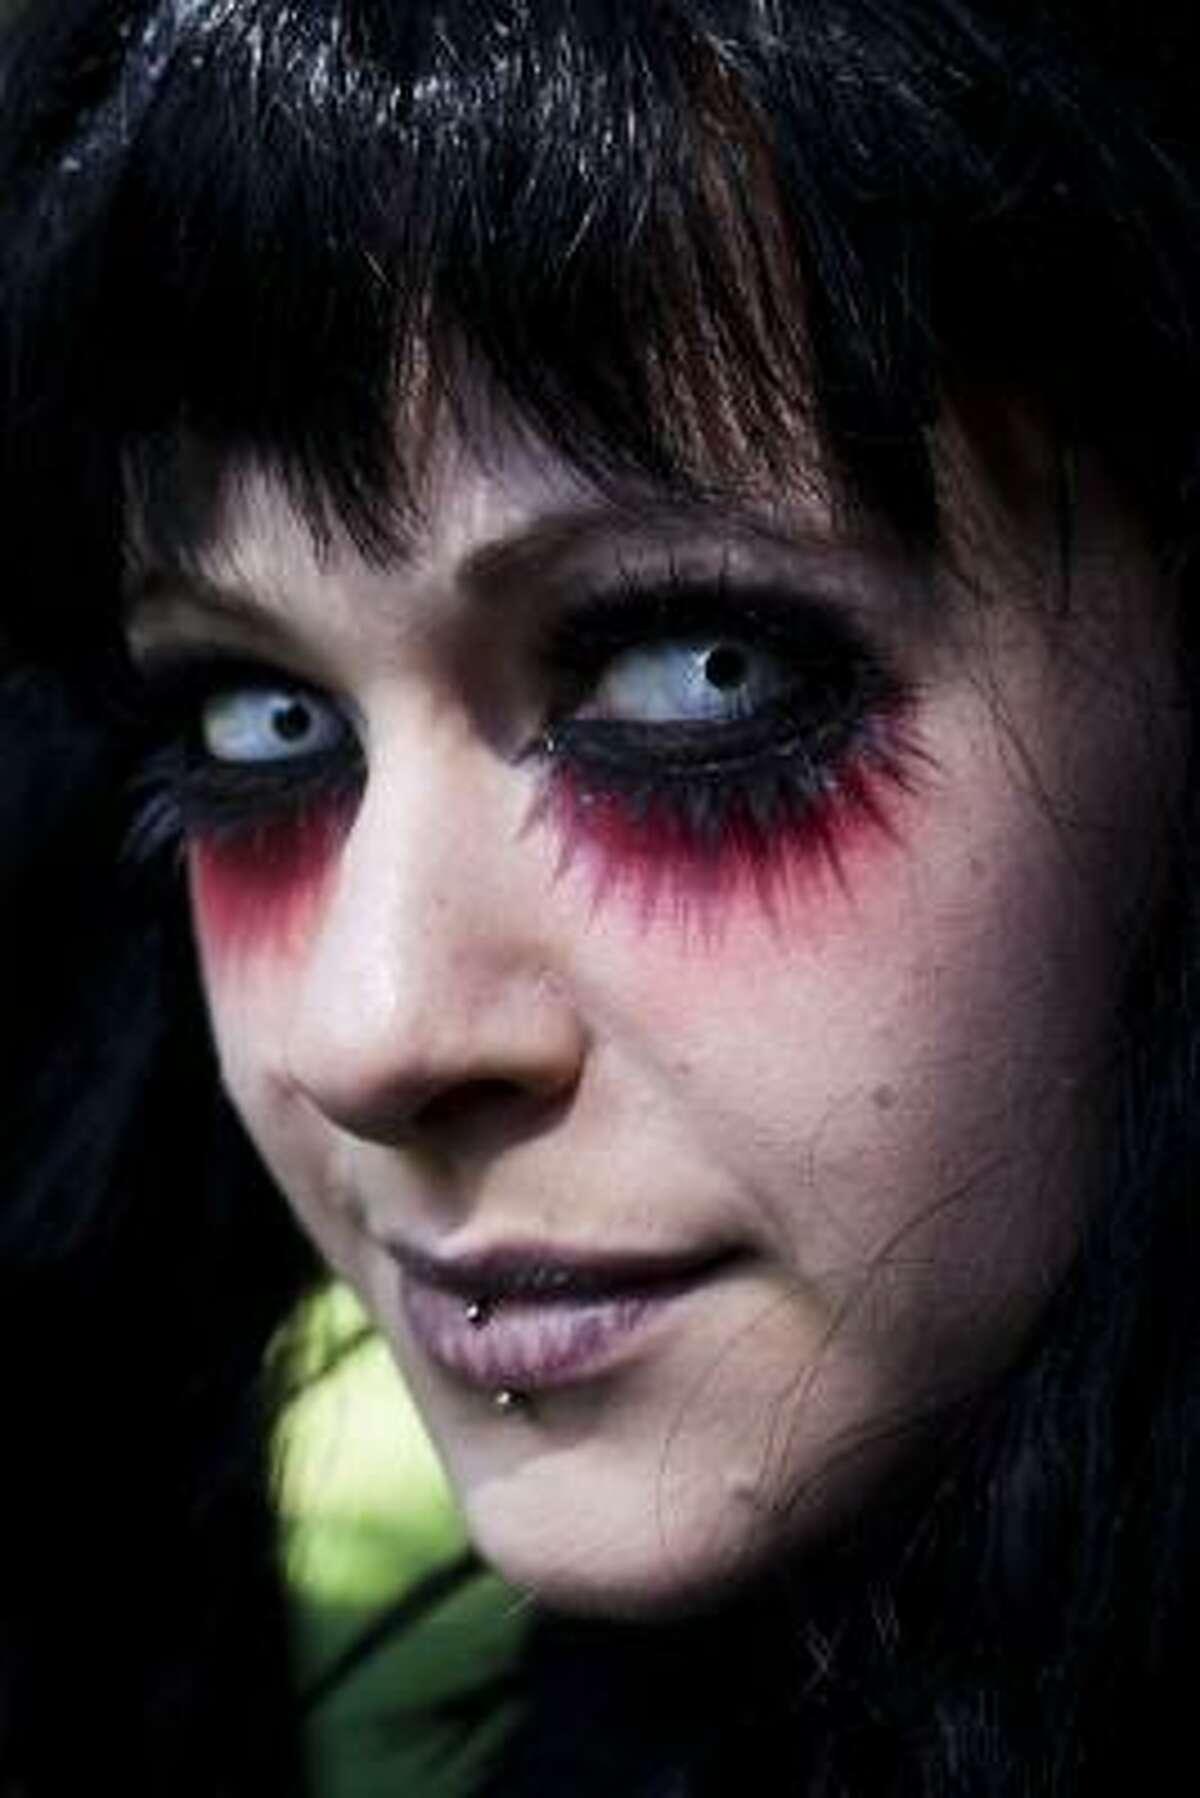 Many of those attending wear elaborate outfits and make-up for which they require hours of painstaking preparation and that also show a departure from the traditional black of the Goth scene.